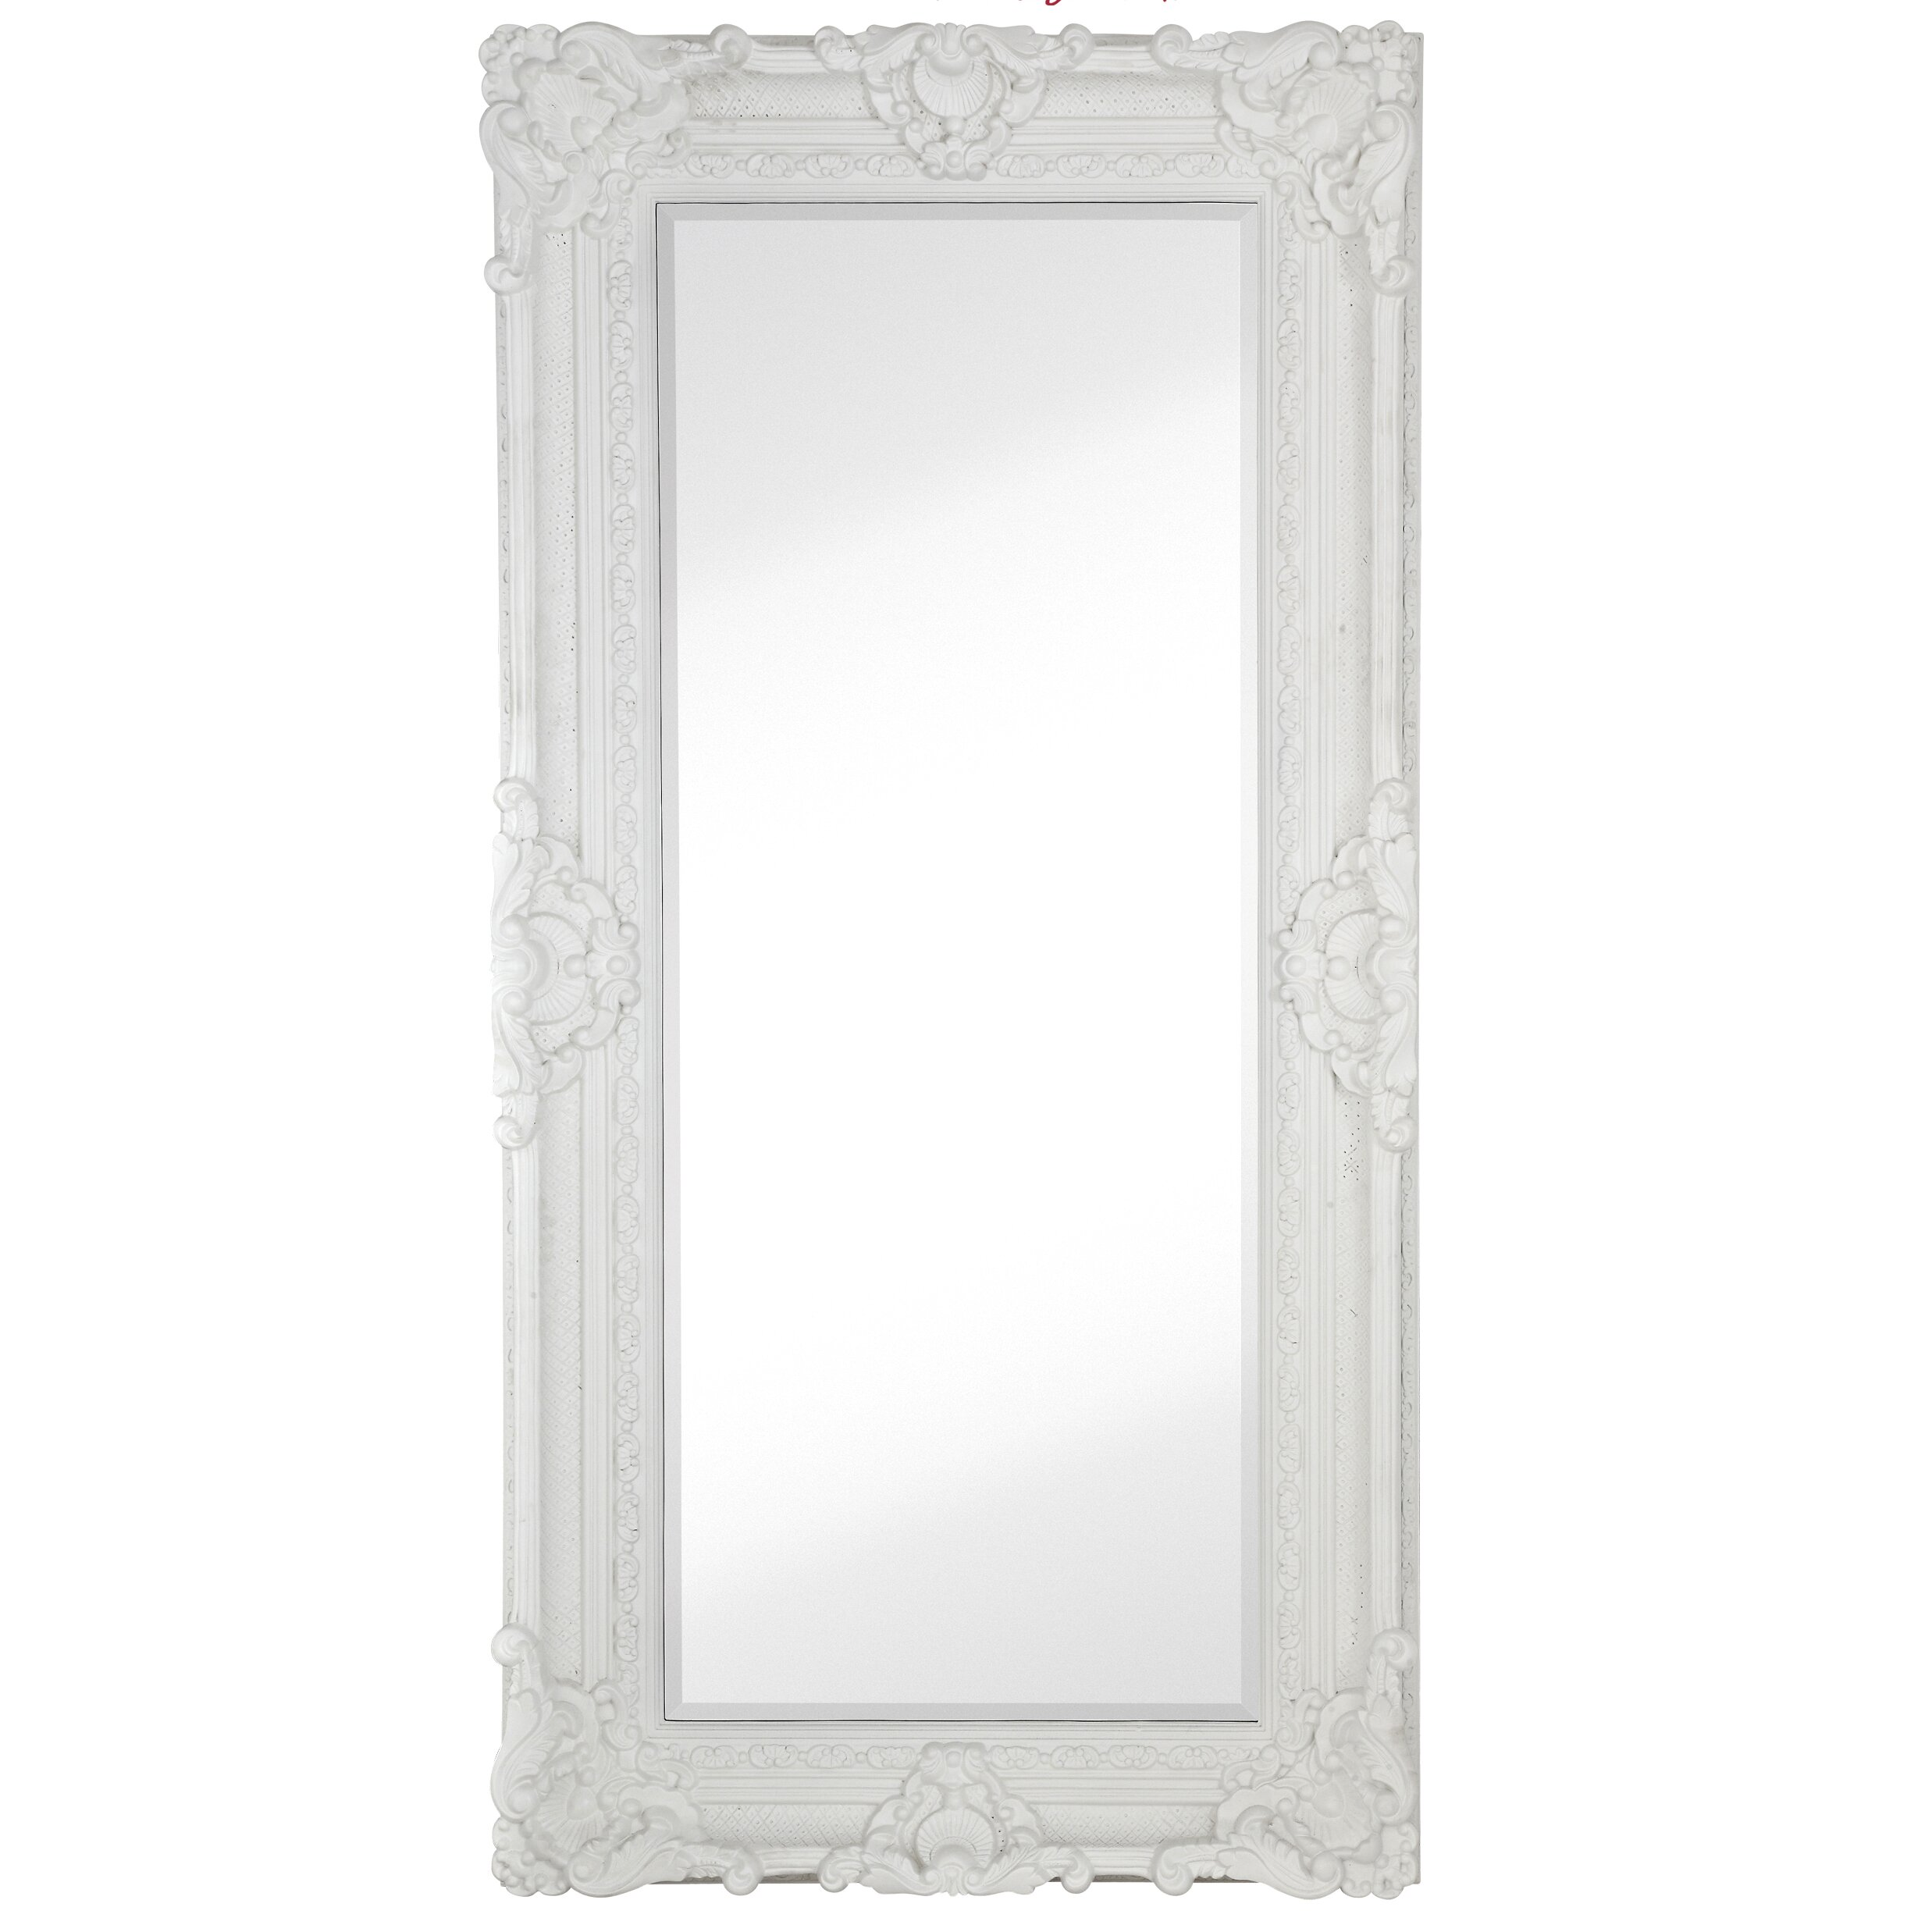 Majestic mirror large traditional white rectangular for White tall wall mirror